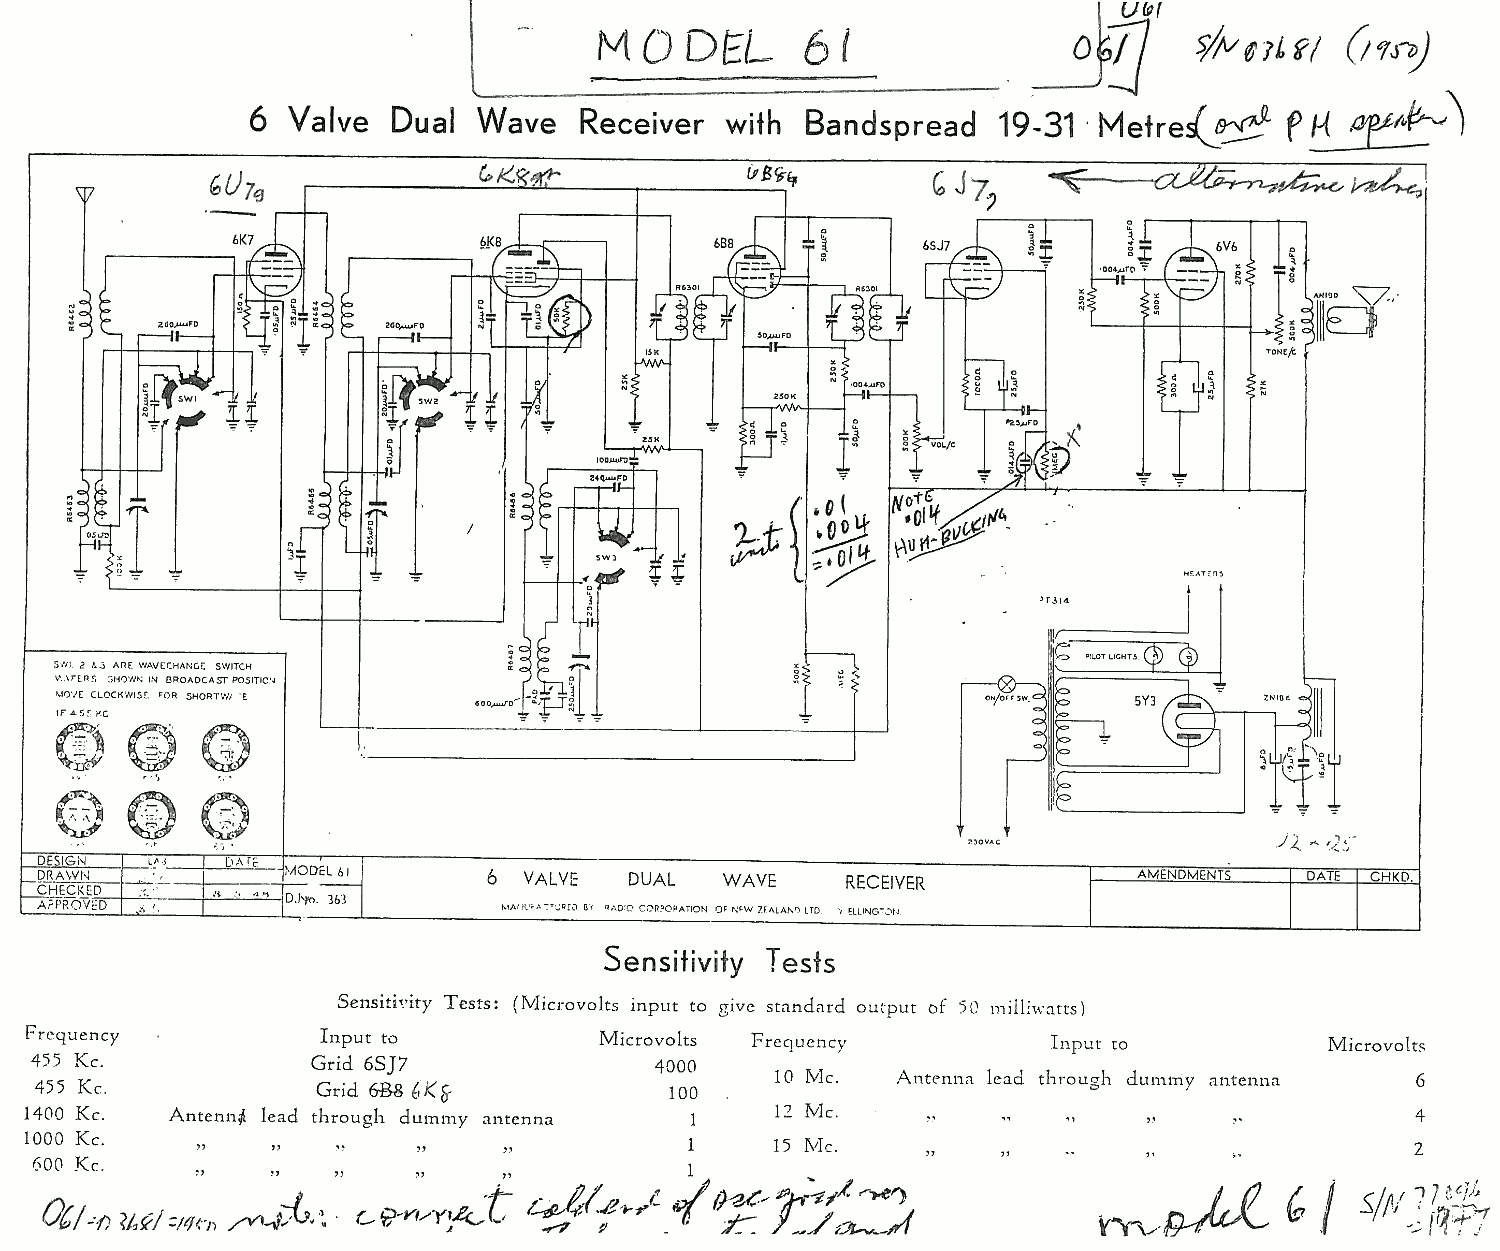 1947 Columbus & Courtenay model 61 Schematic with notes